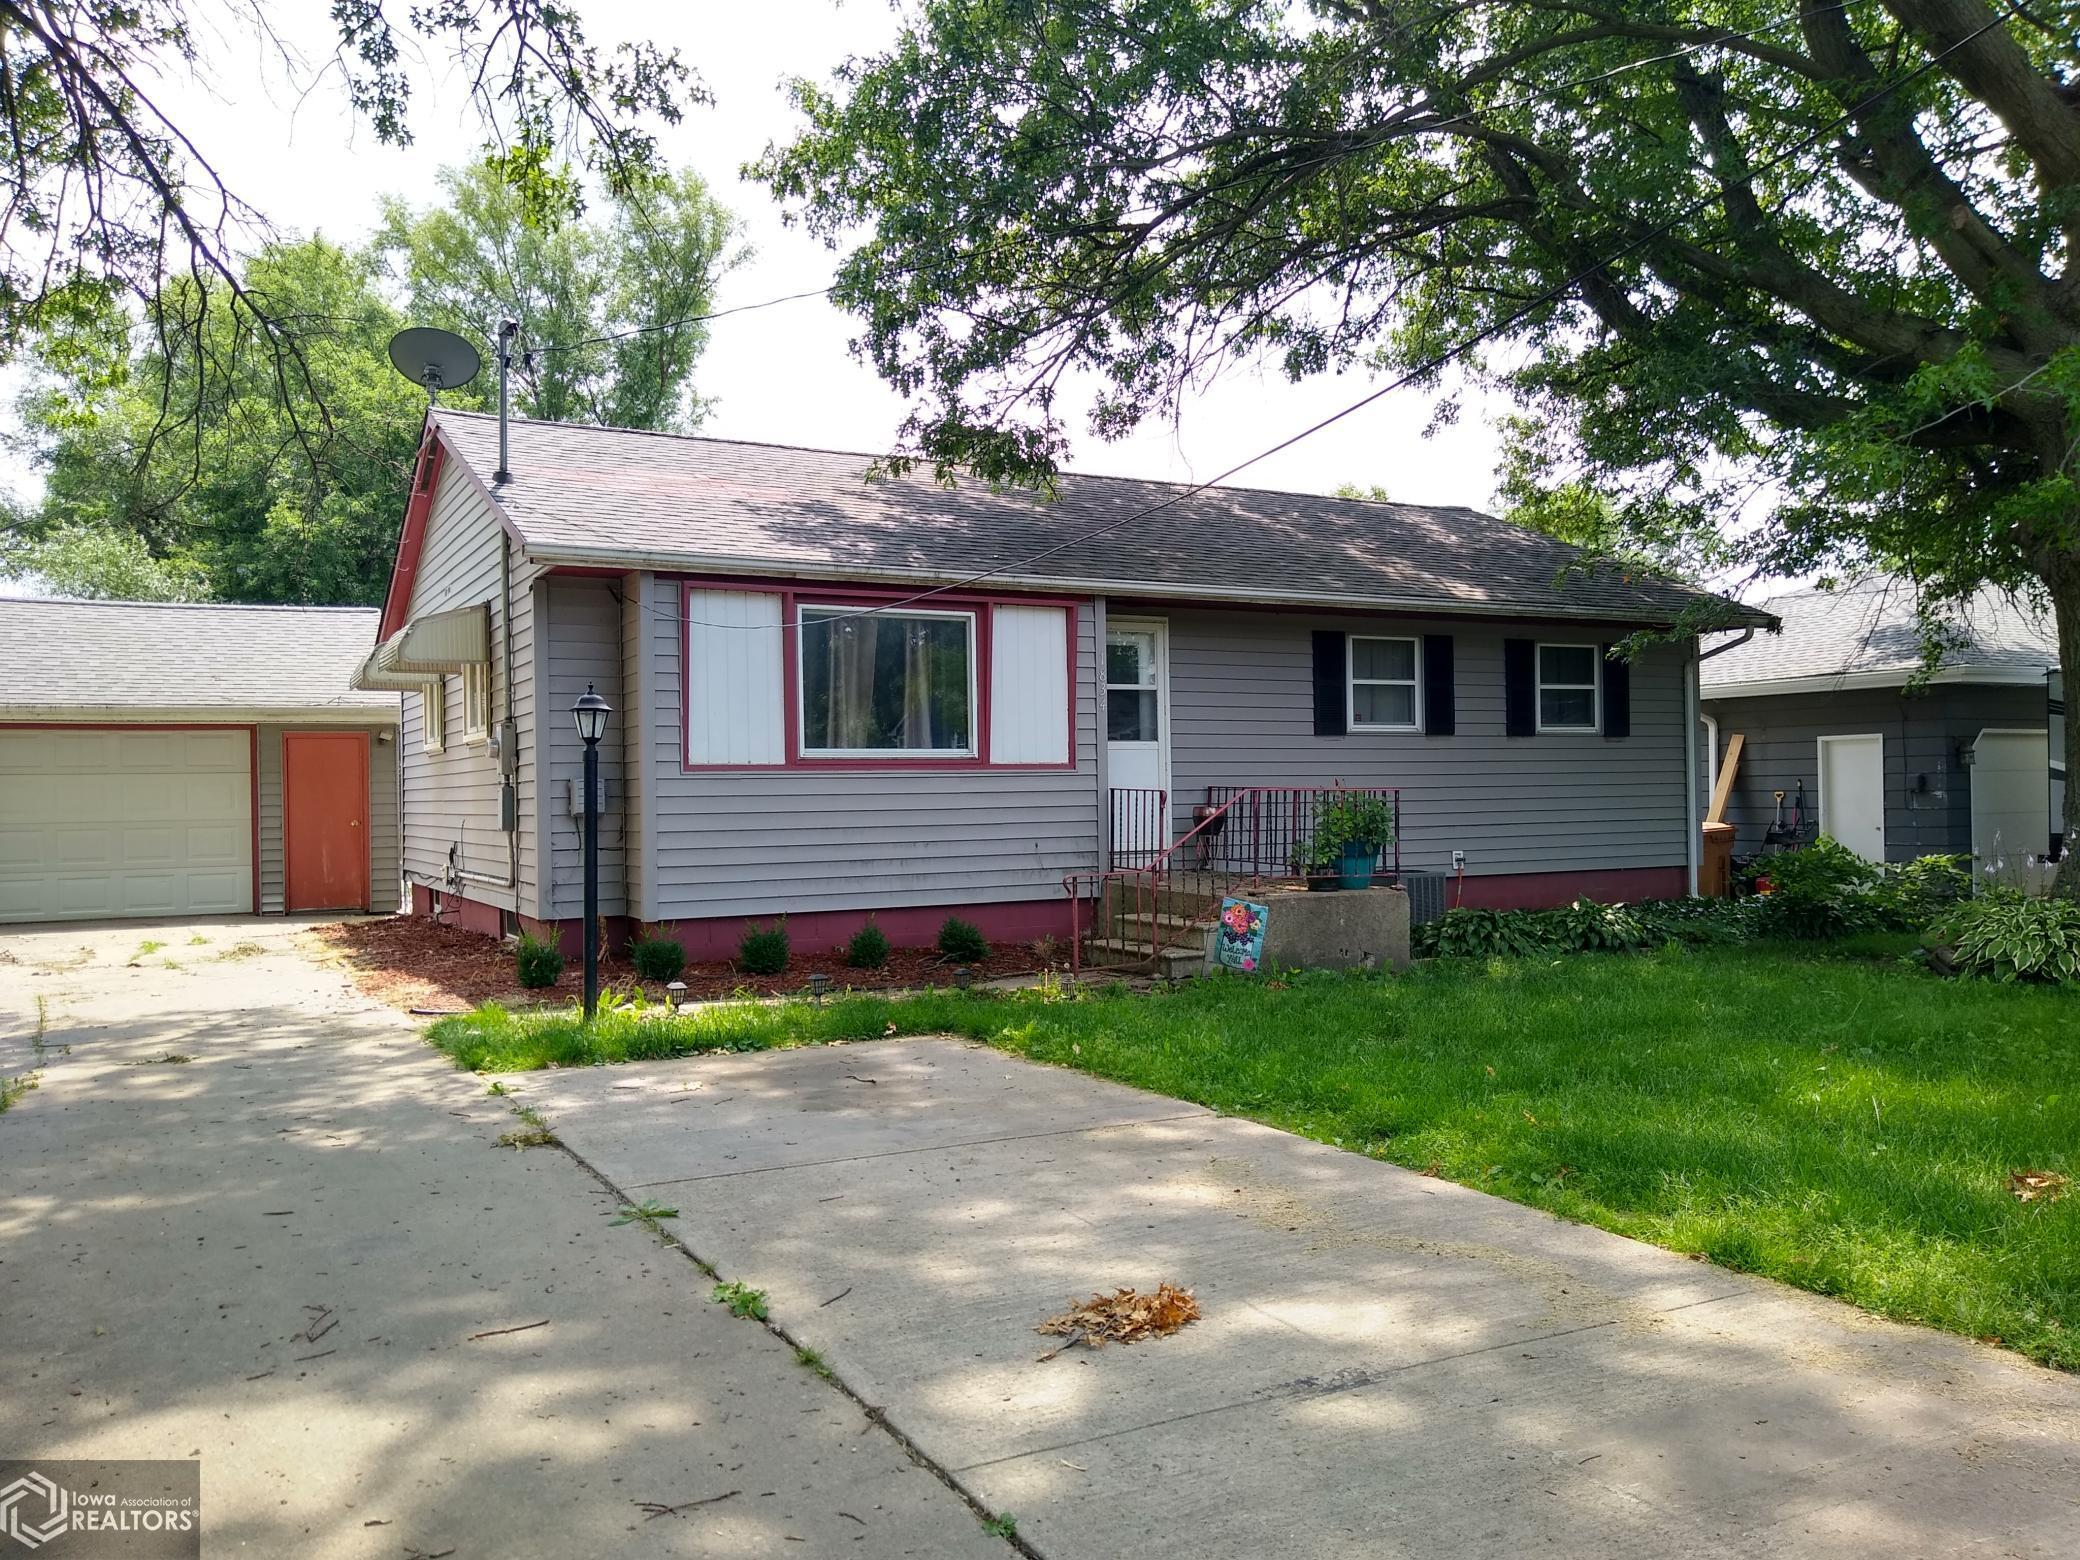 1834 4th, Grinnell, Iowa 50112-2068, 3 Bedrooms Bedrooms, ,2 BathroomsBathrooms,Single Family,For Sale,4th,6027843